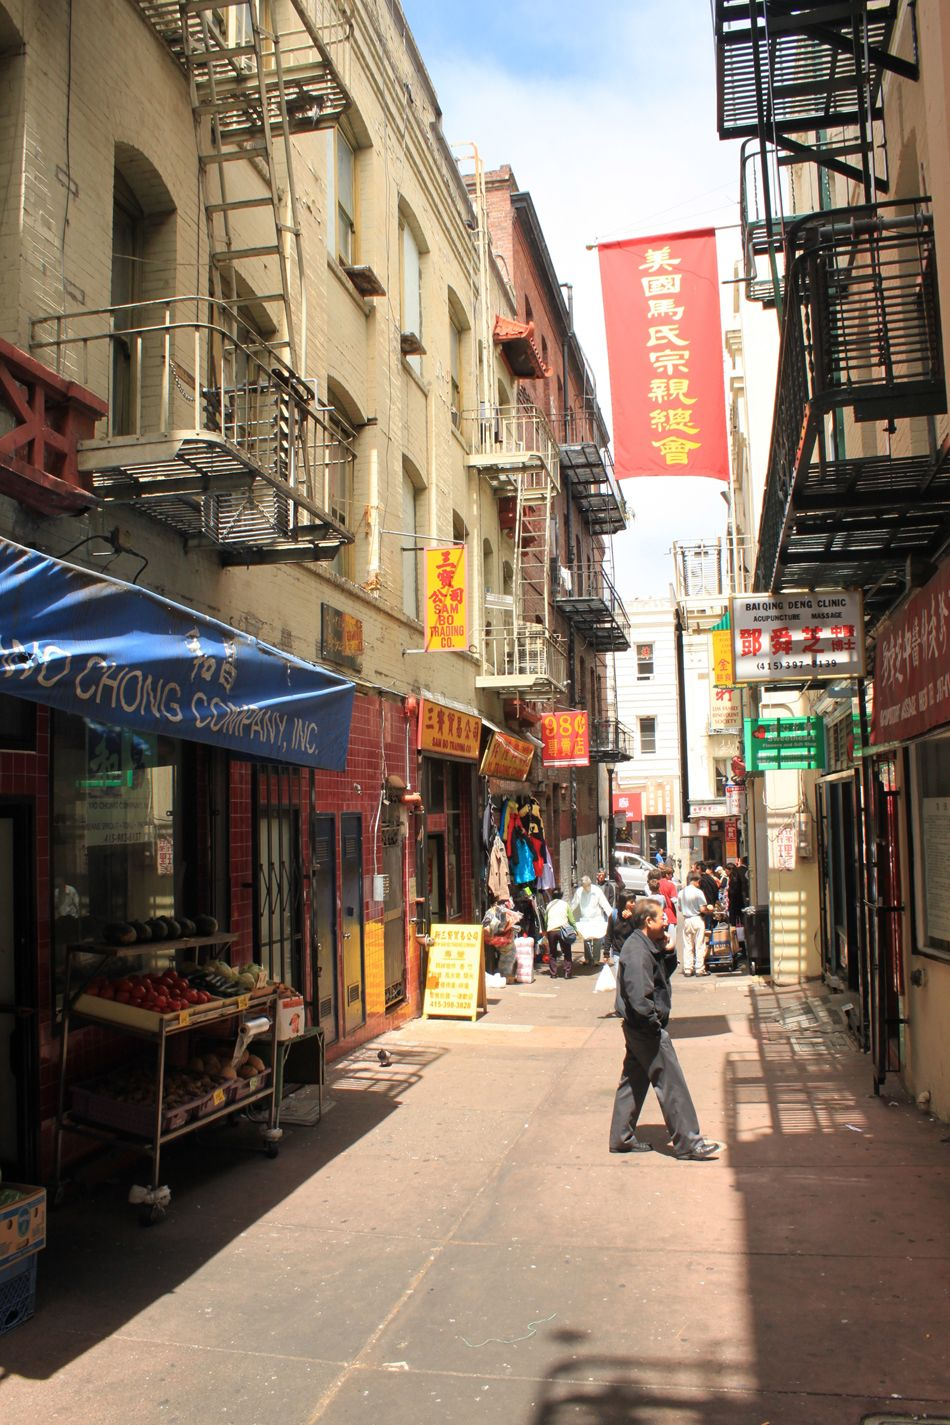 Related Image Chicago Apartment Alleyway Courtyard Apartments